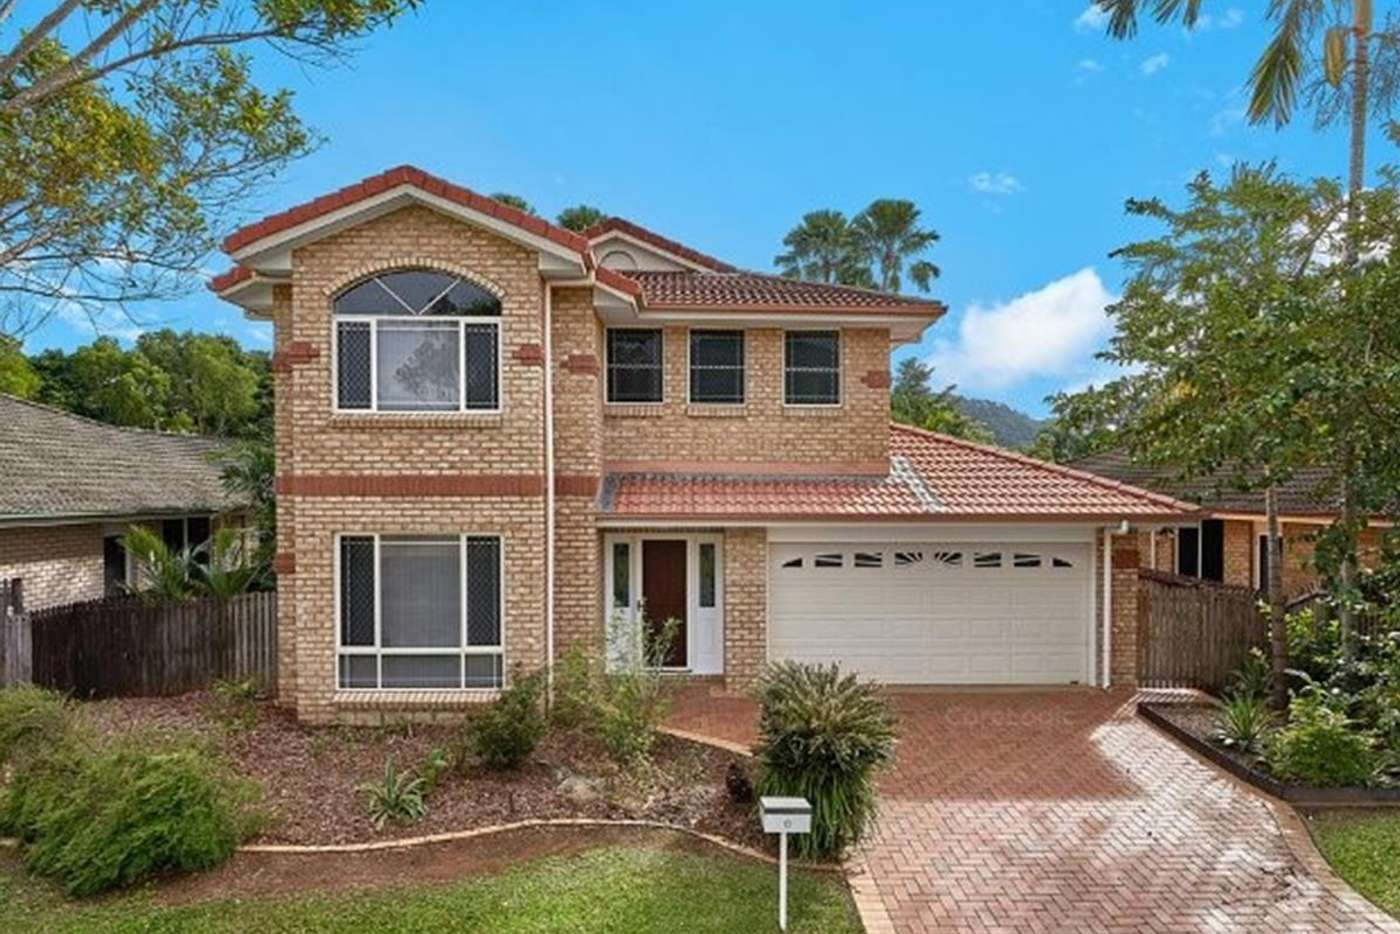 Main view of Homely house listing, 10 Obersky Cl, Brinsmead QLD 4870